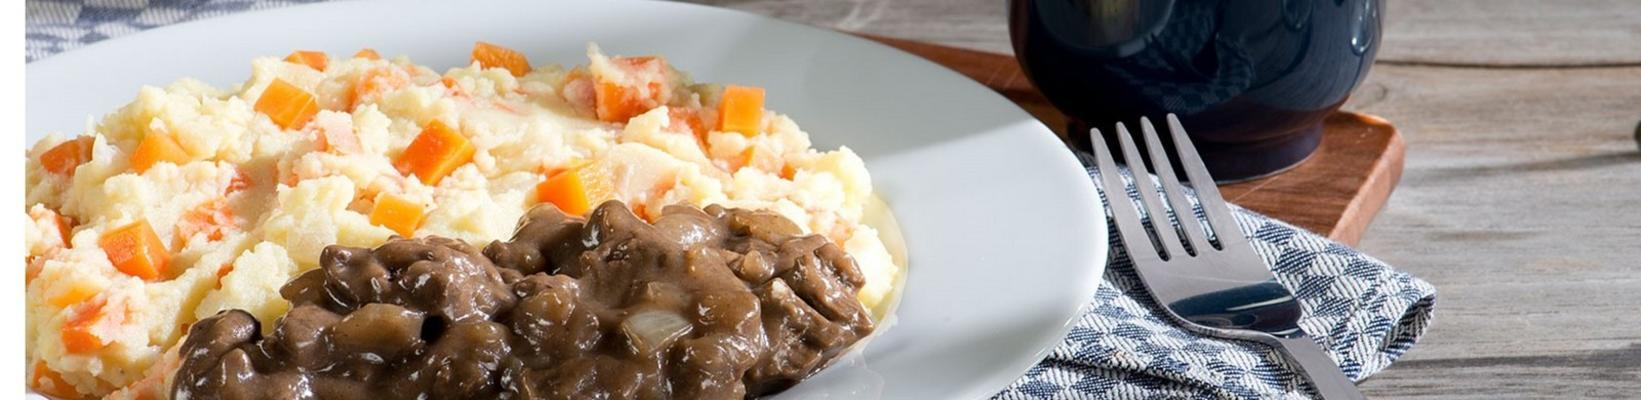 stew with hachee